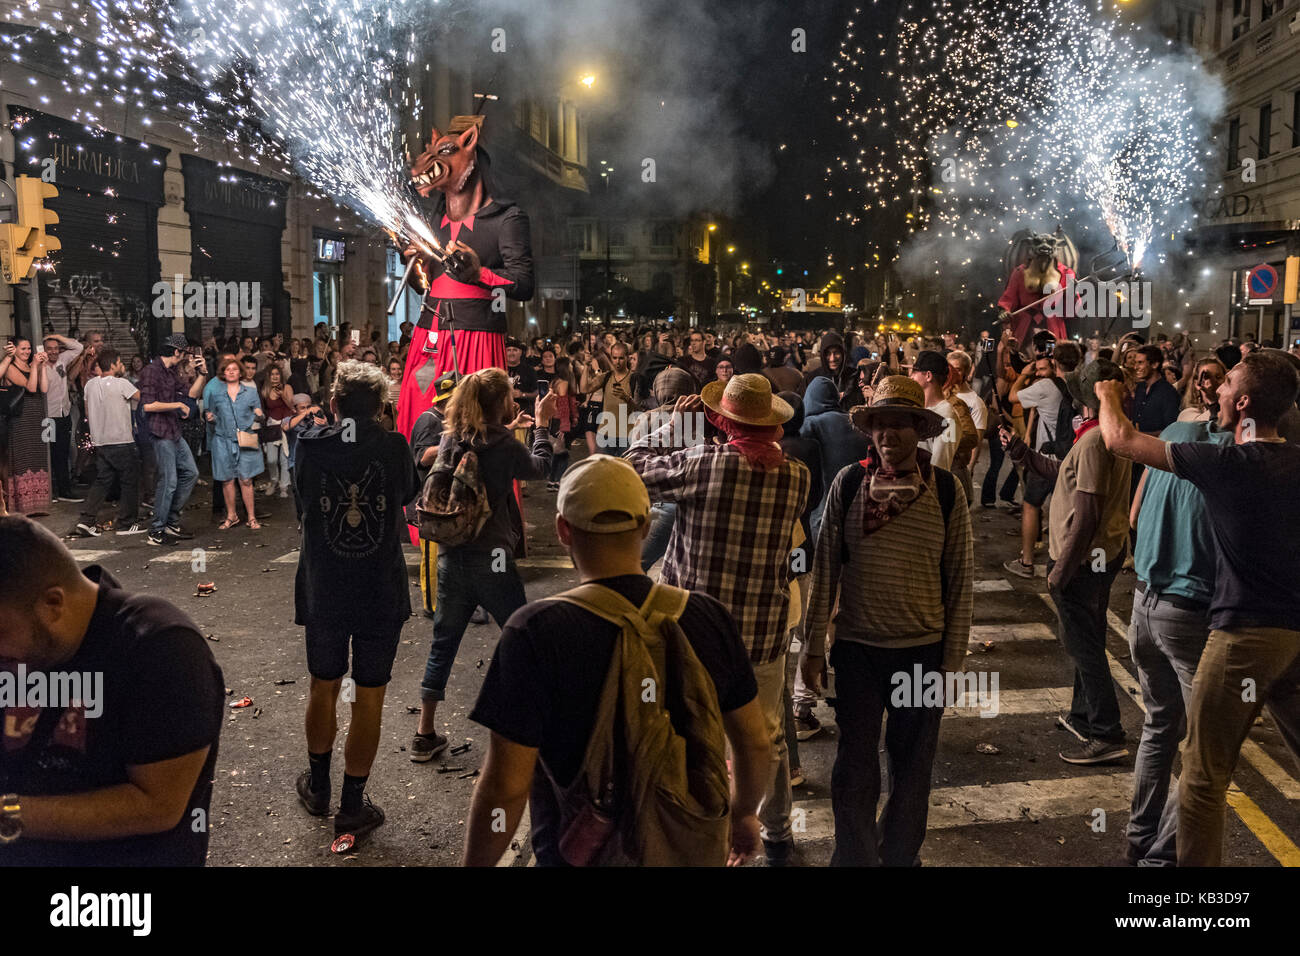 Correfocs are among the most striking features present in Catalan festivals. In the correfoc, a group of individuals - Stock Image